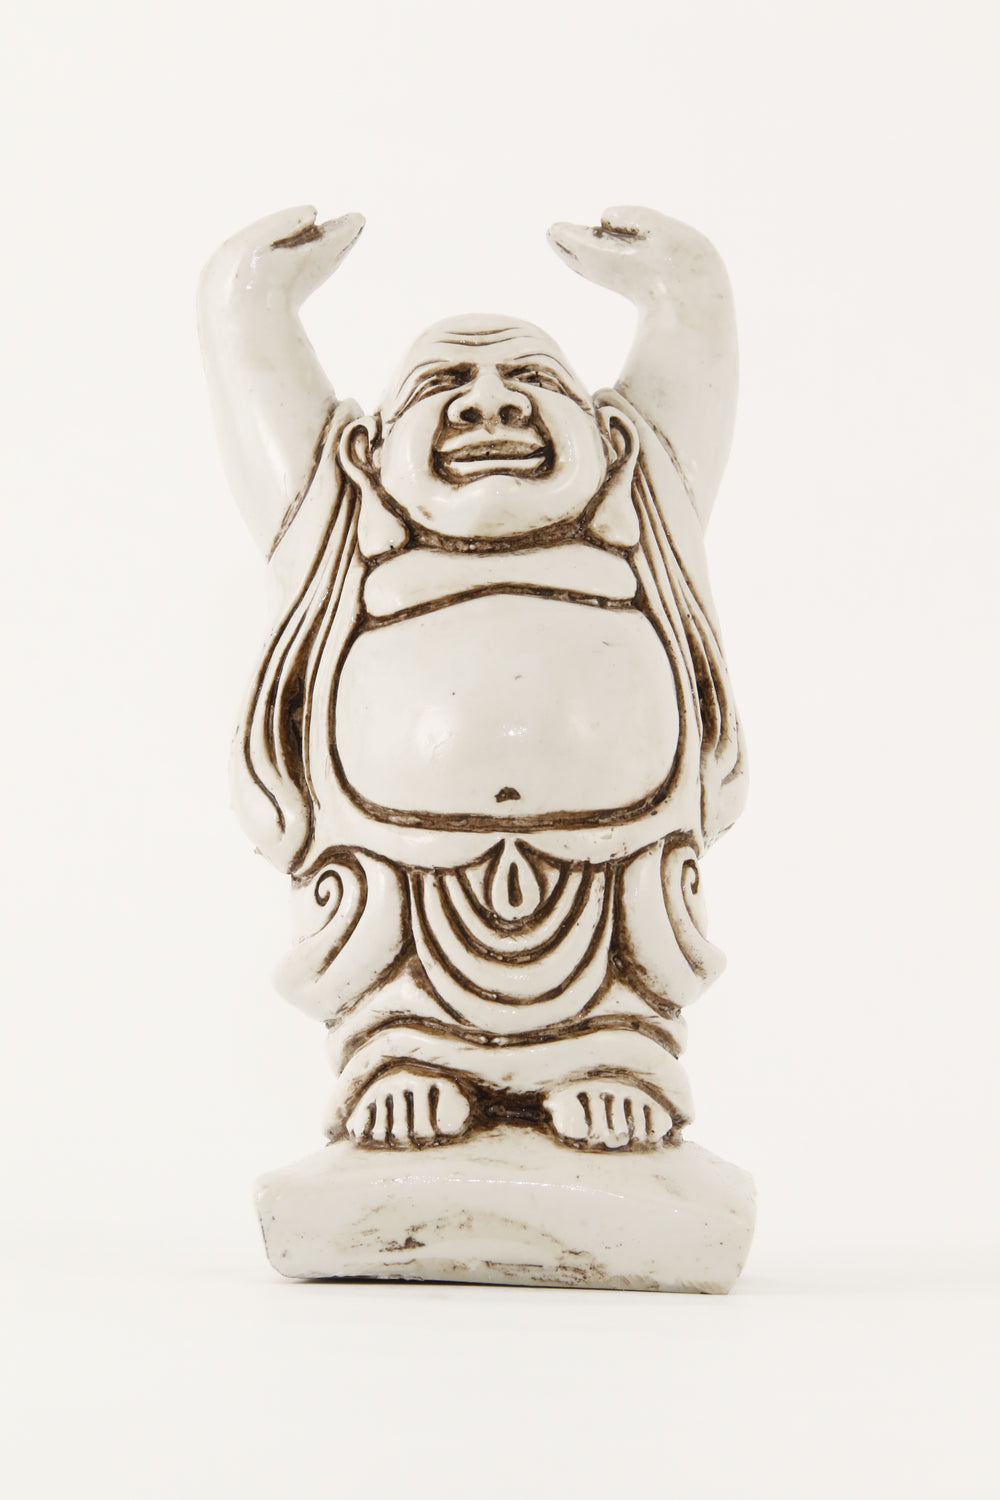 LAUGHING BUDDHA STATUE OFF-WHITE LARGE SIZE FRONT VIEW